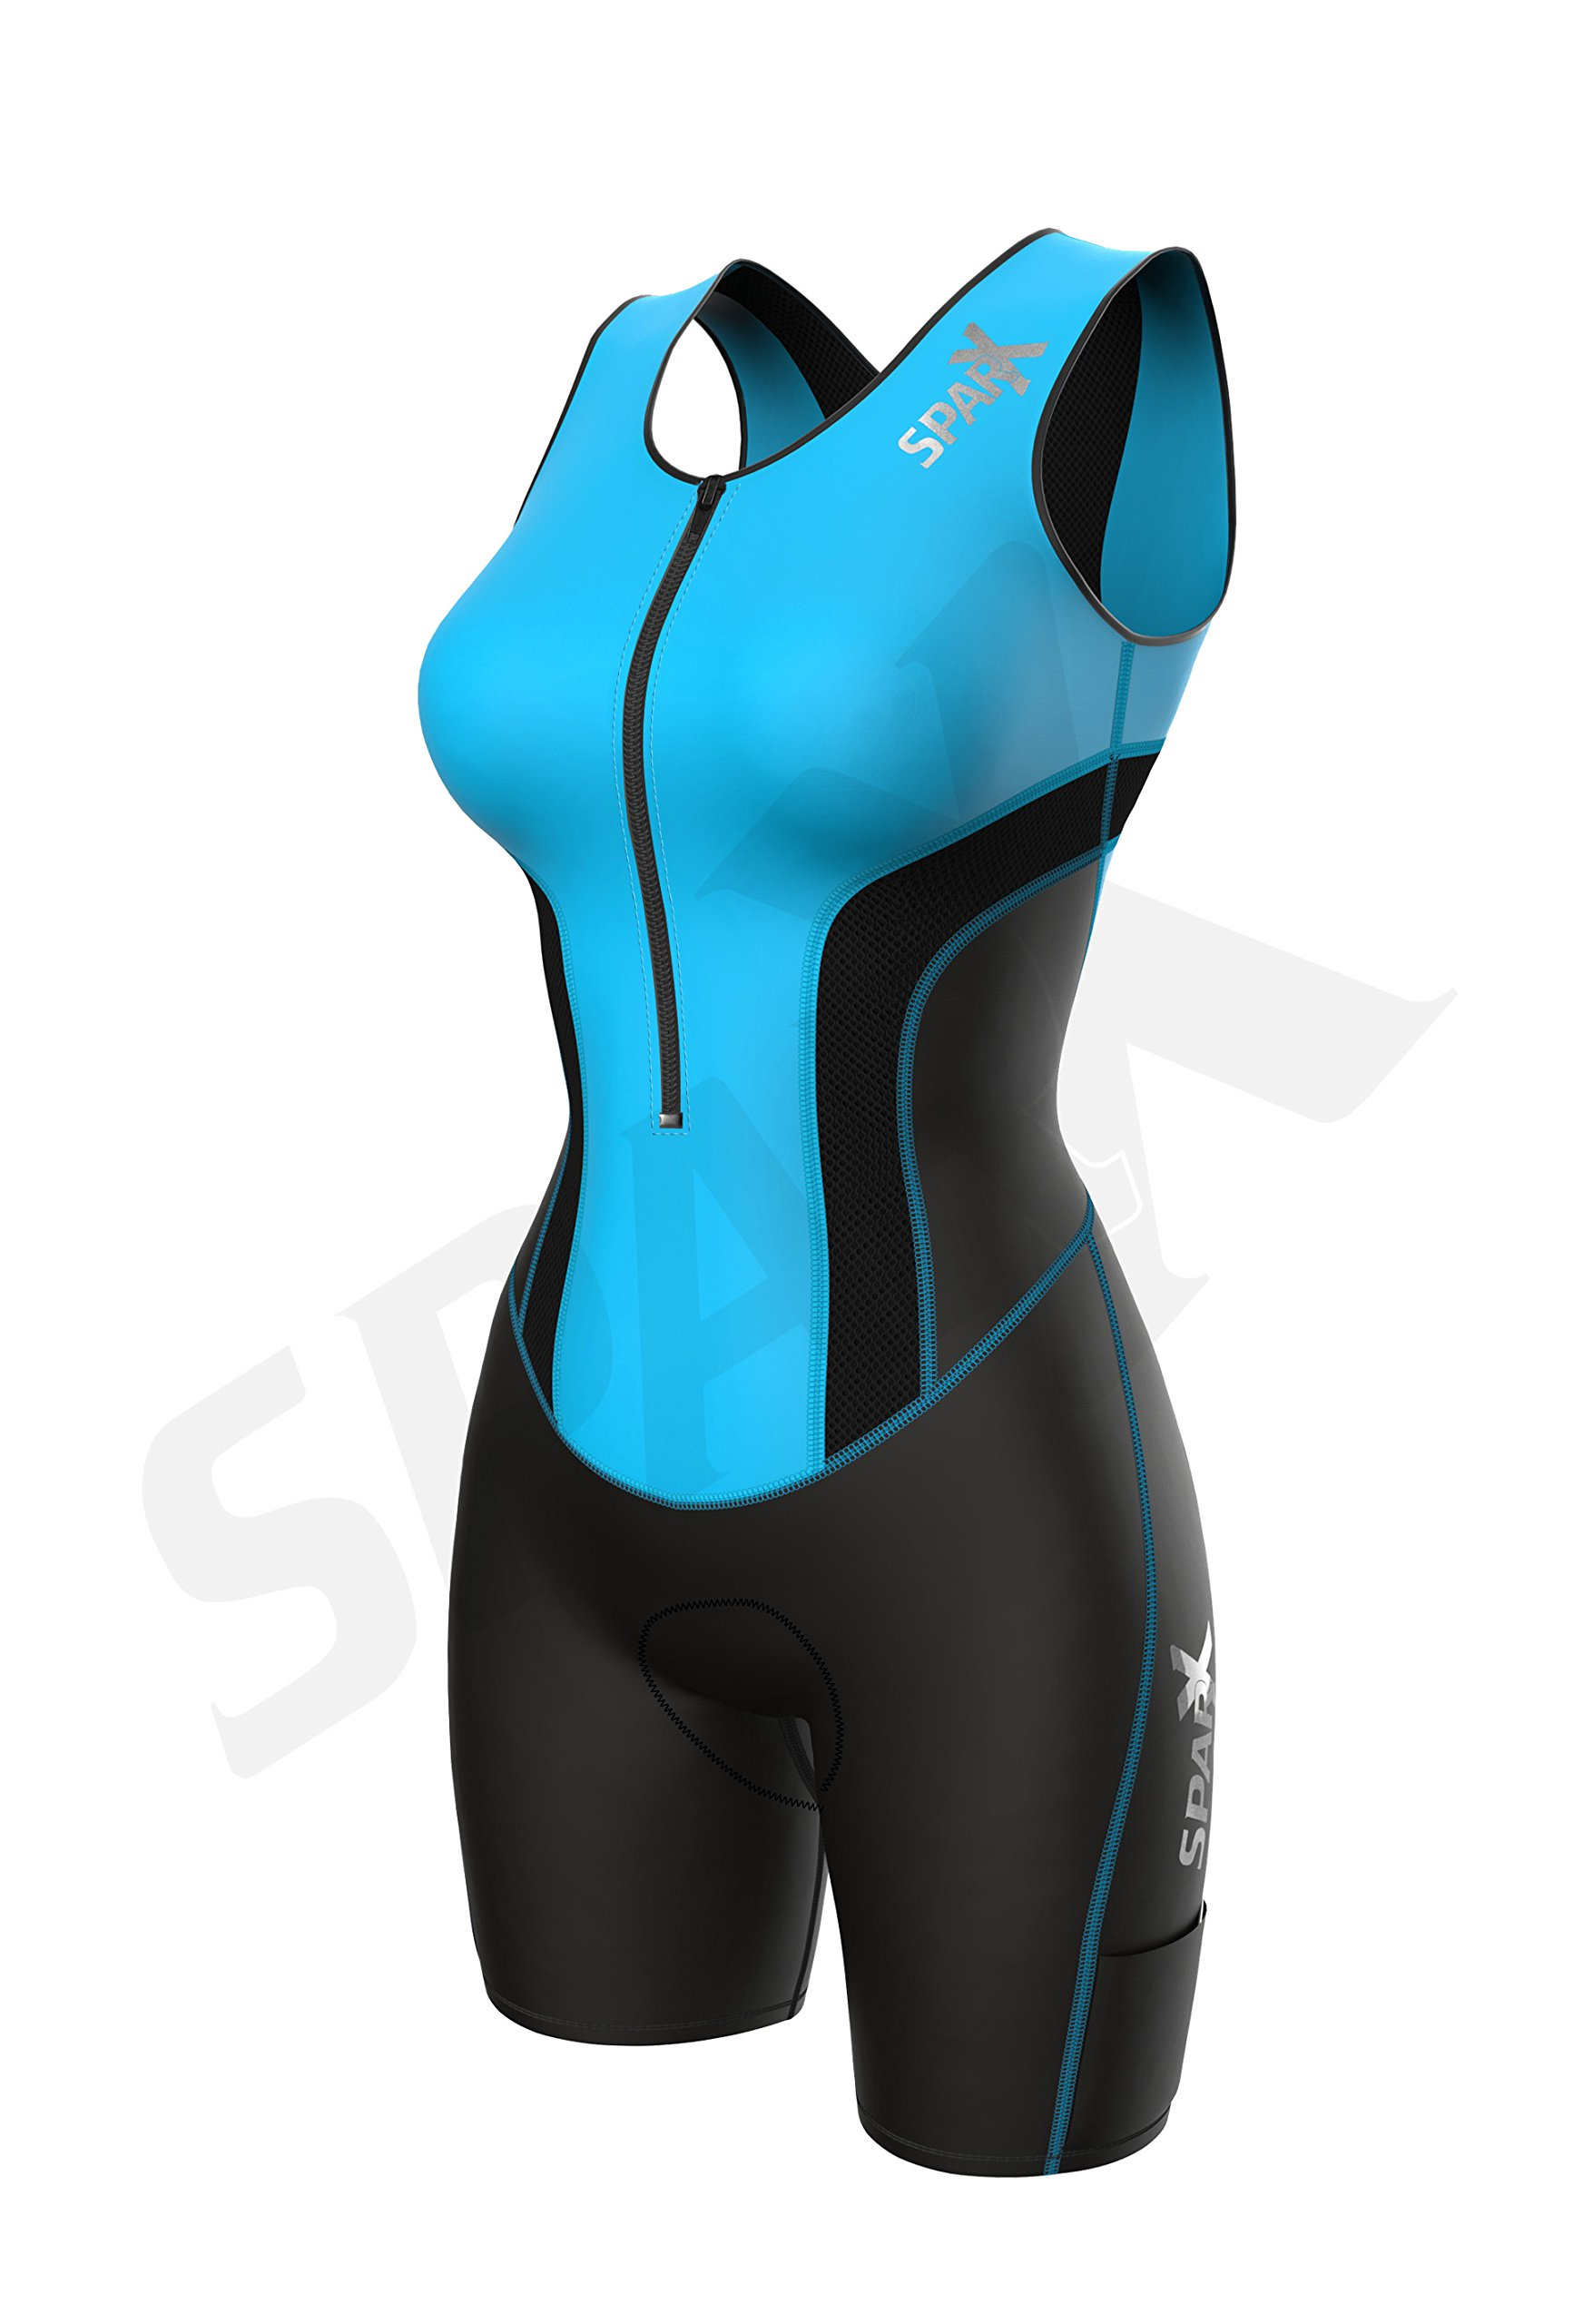 Sparx Women Triathlon Suit Tri Short Racing Cycling Swim Run (Small, Aqua) by Sparx Sports (Image #3)